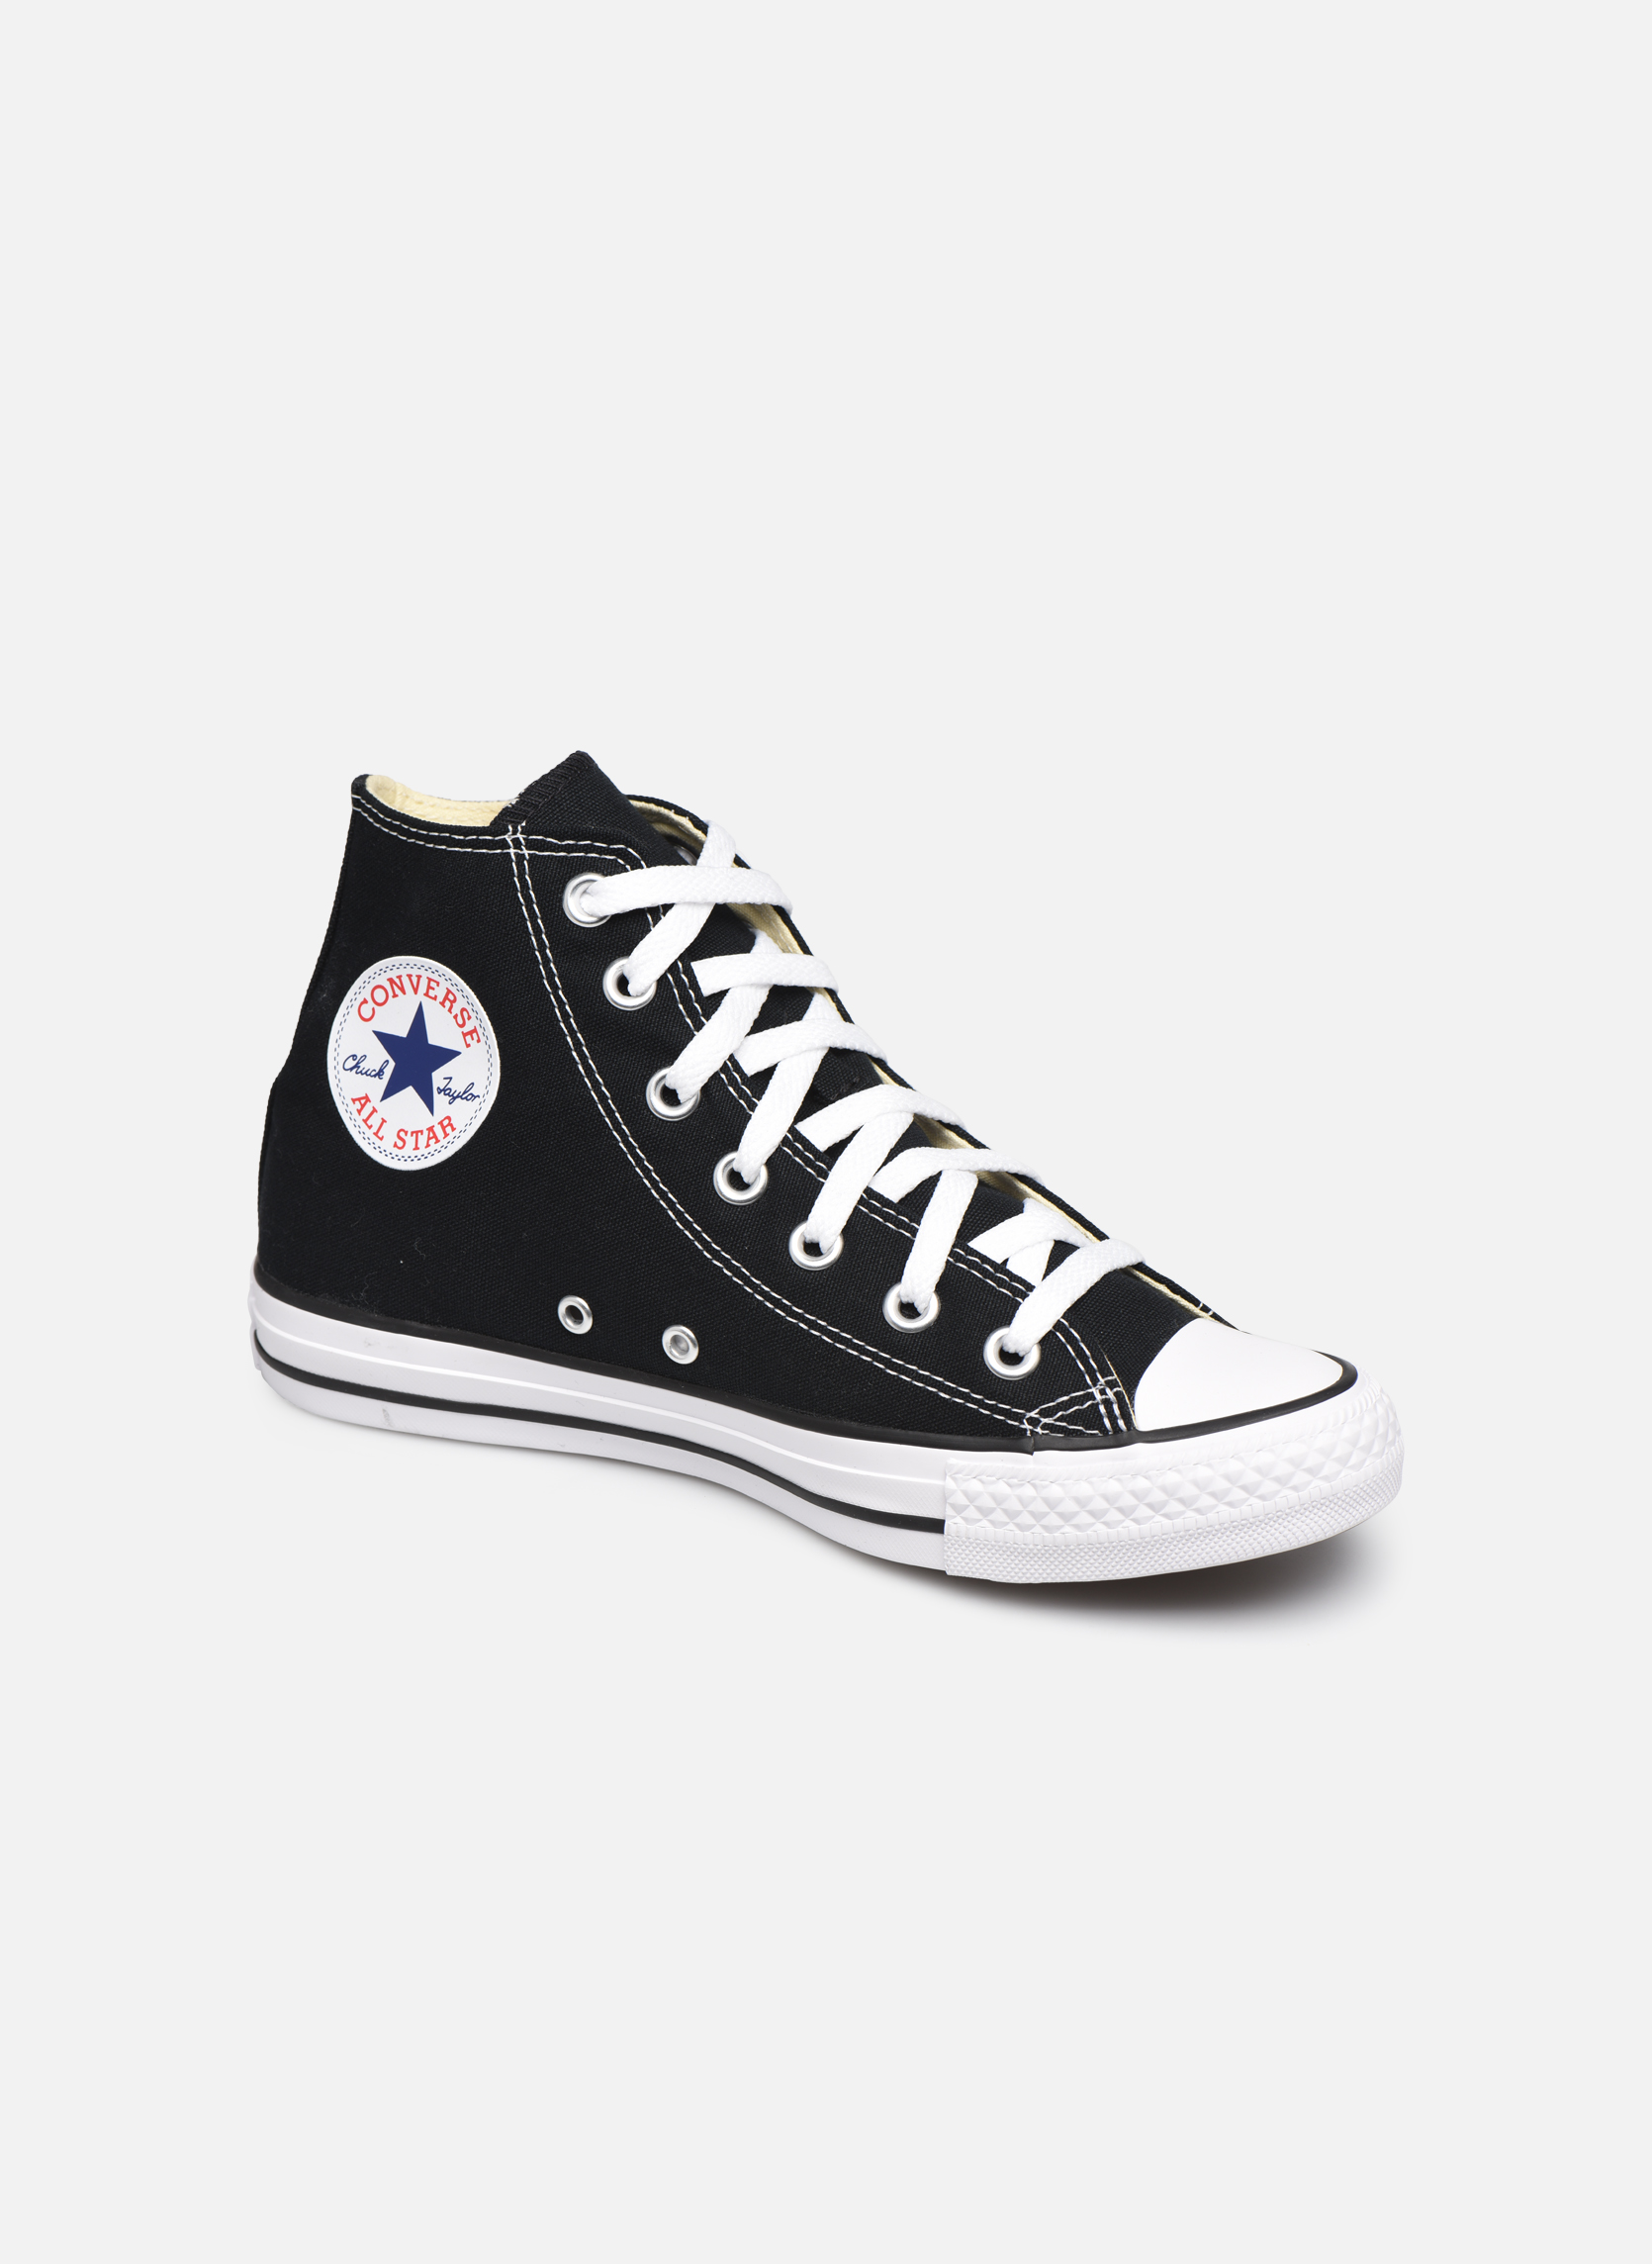 Baskets Femme Chuck Taylor All Star Hi W